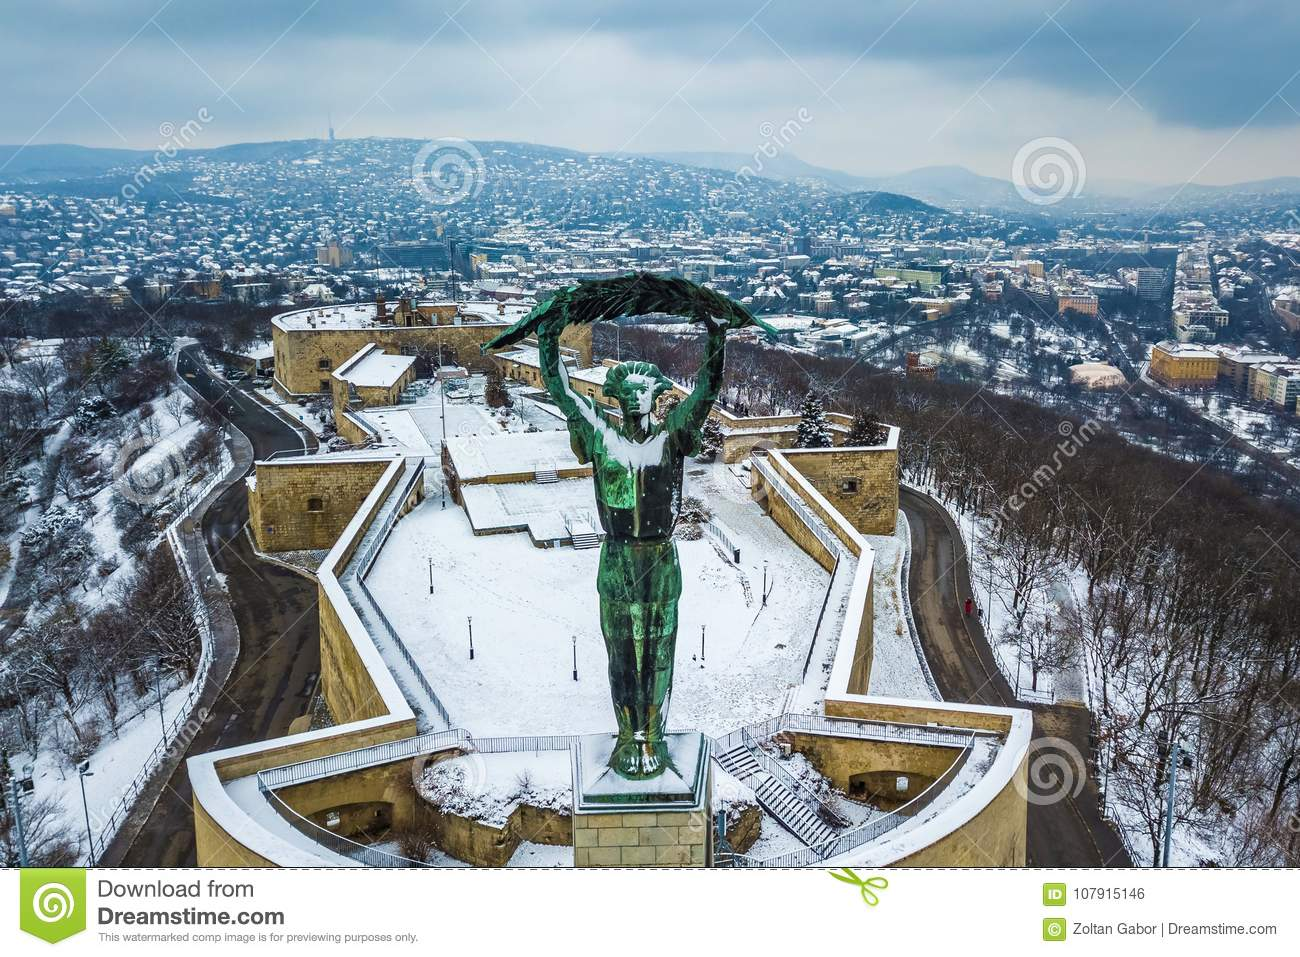 Budapest, Hungary - Aerial skyline view of Statue of Liberty with Buda side at background